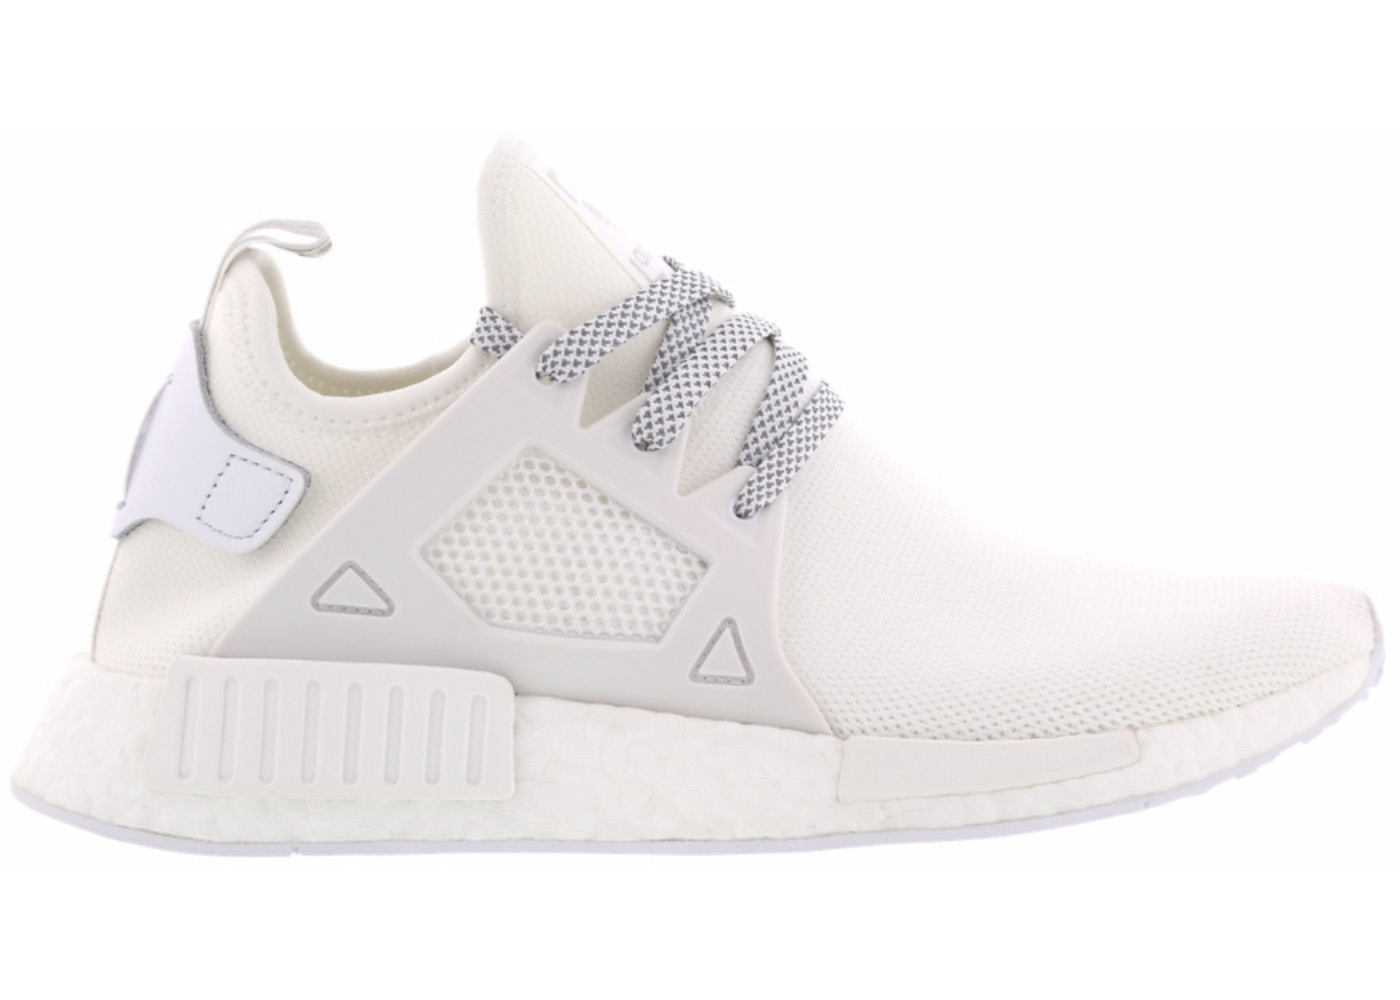 b30760cd5b84b adidas NMD XR1 Shoes - Last Sale